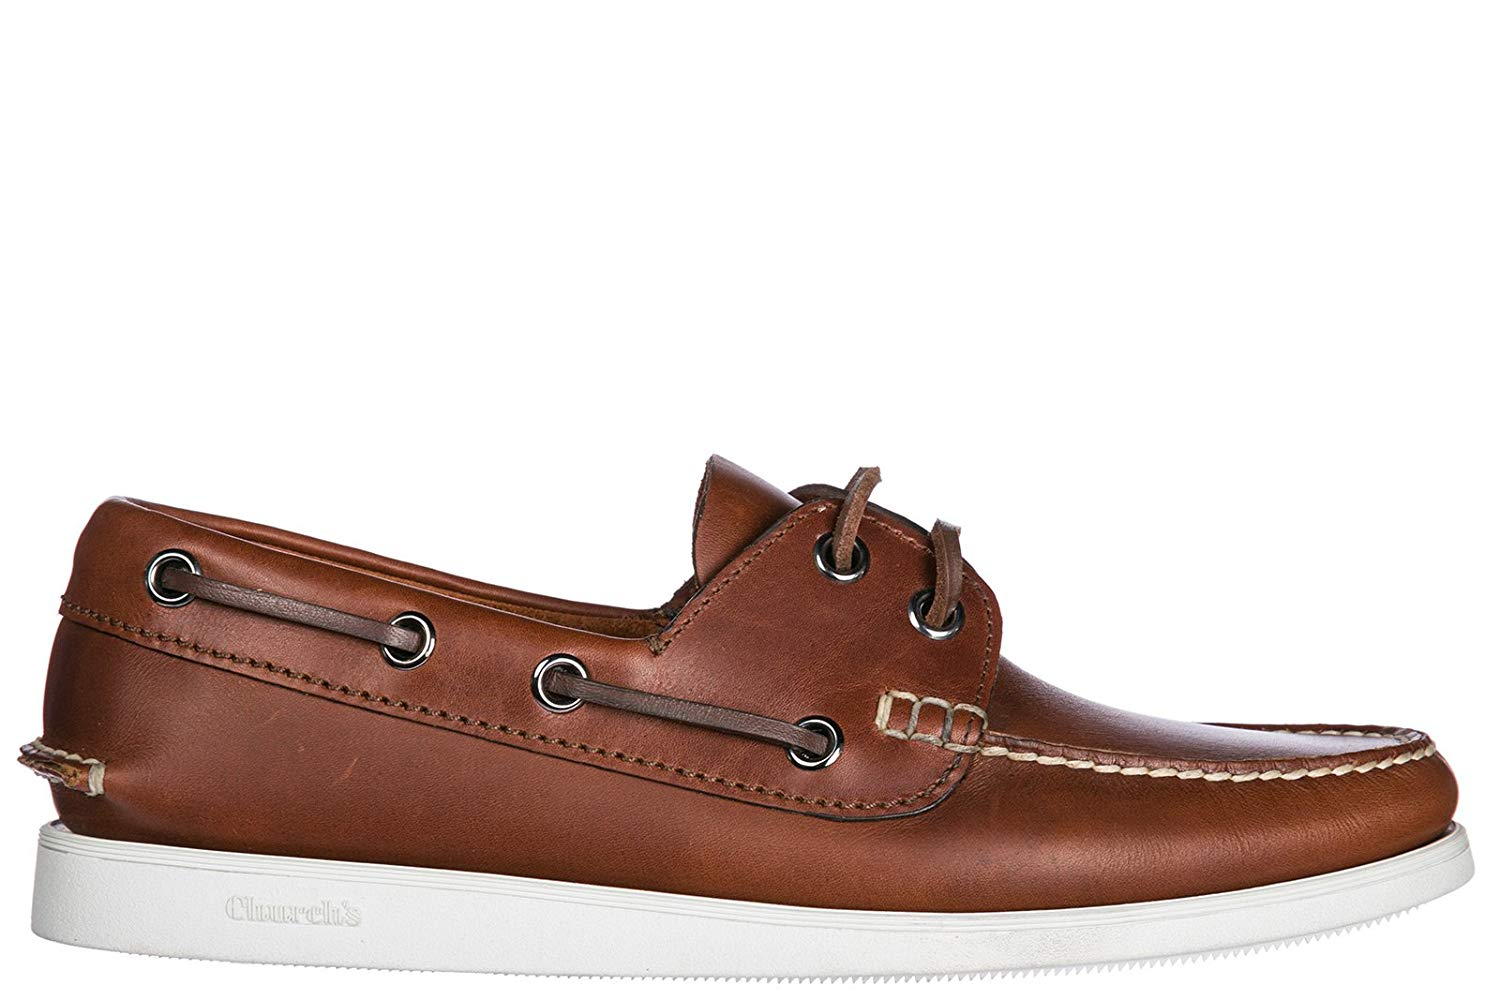 2b672ab1032 Get Quotations · Church s Men s Leather Loafers Moccasins Brown